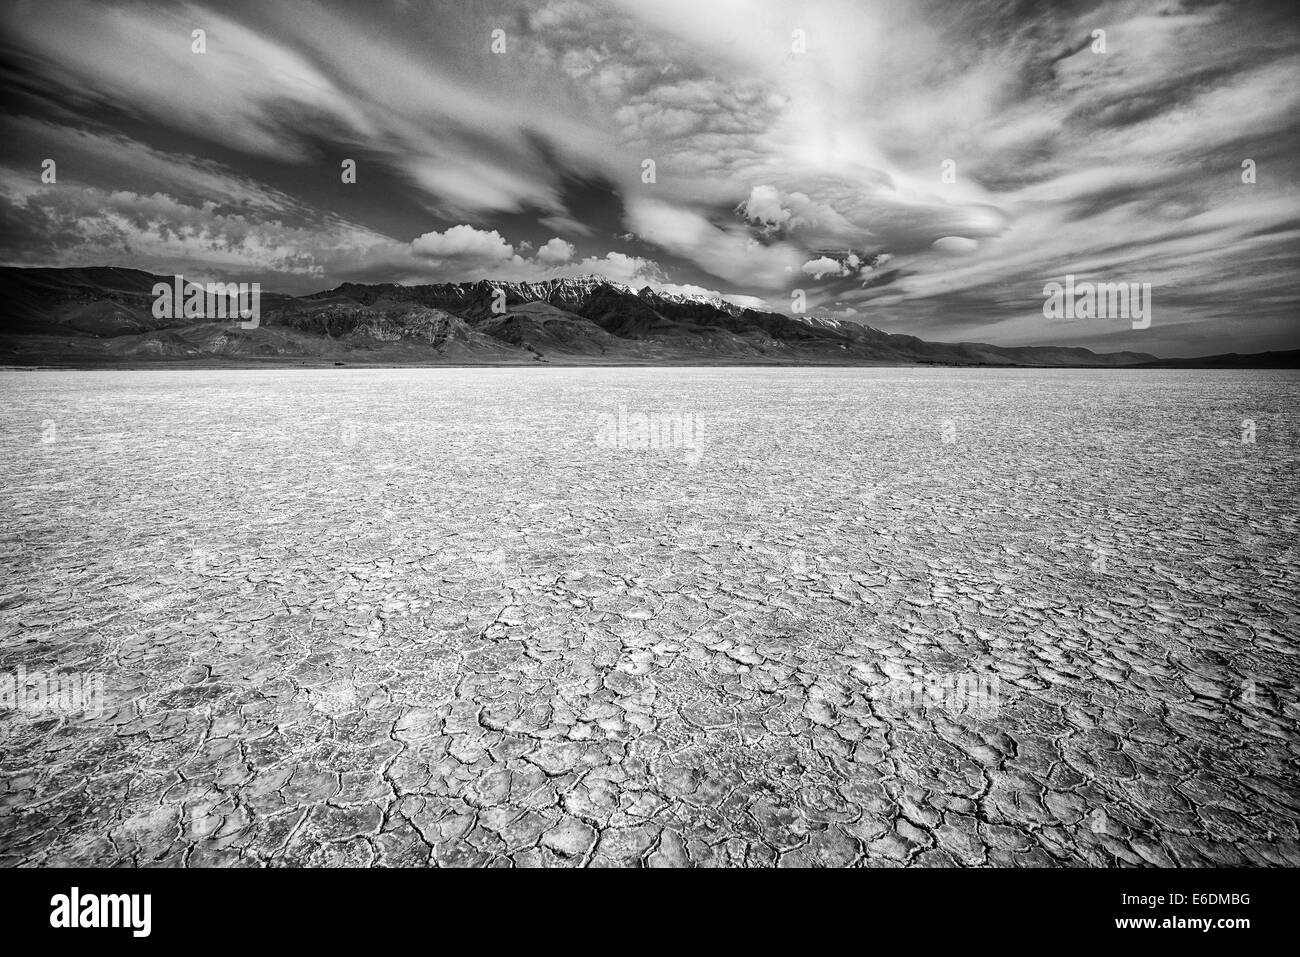 Alvord desert and Steens Mountain, Oregon - Stock Image